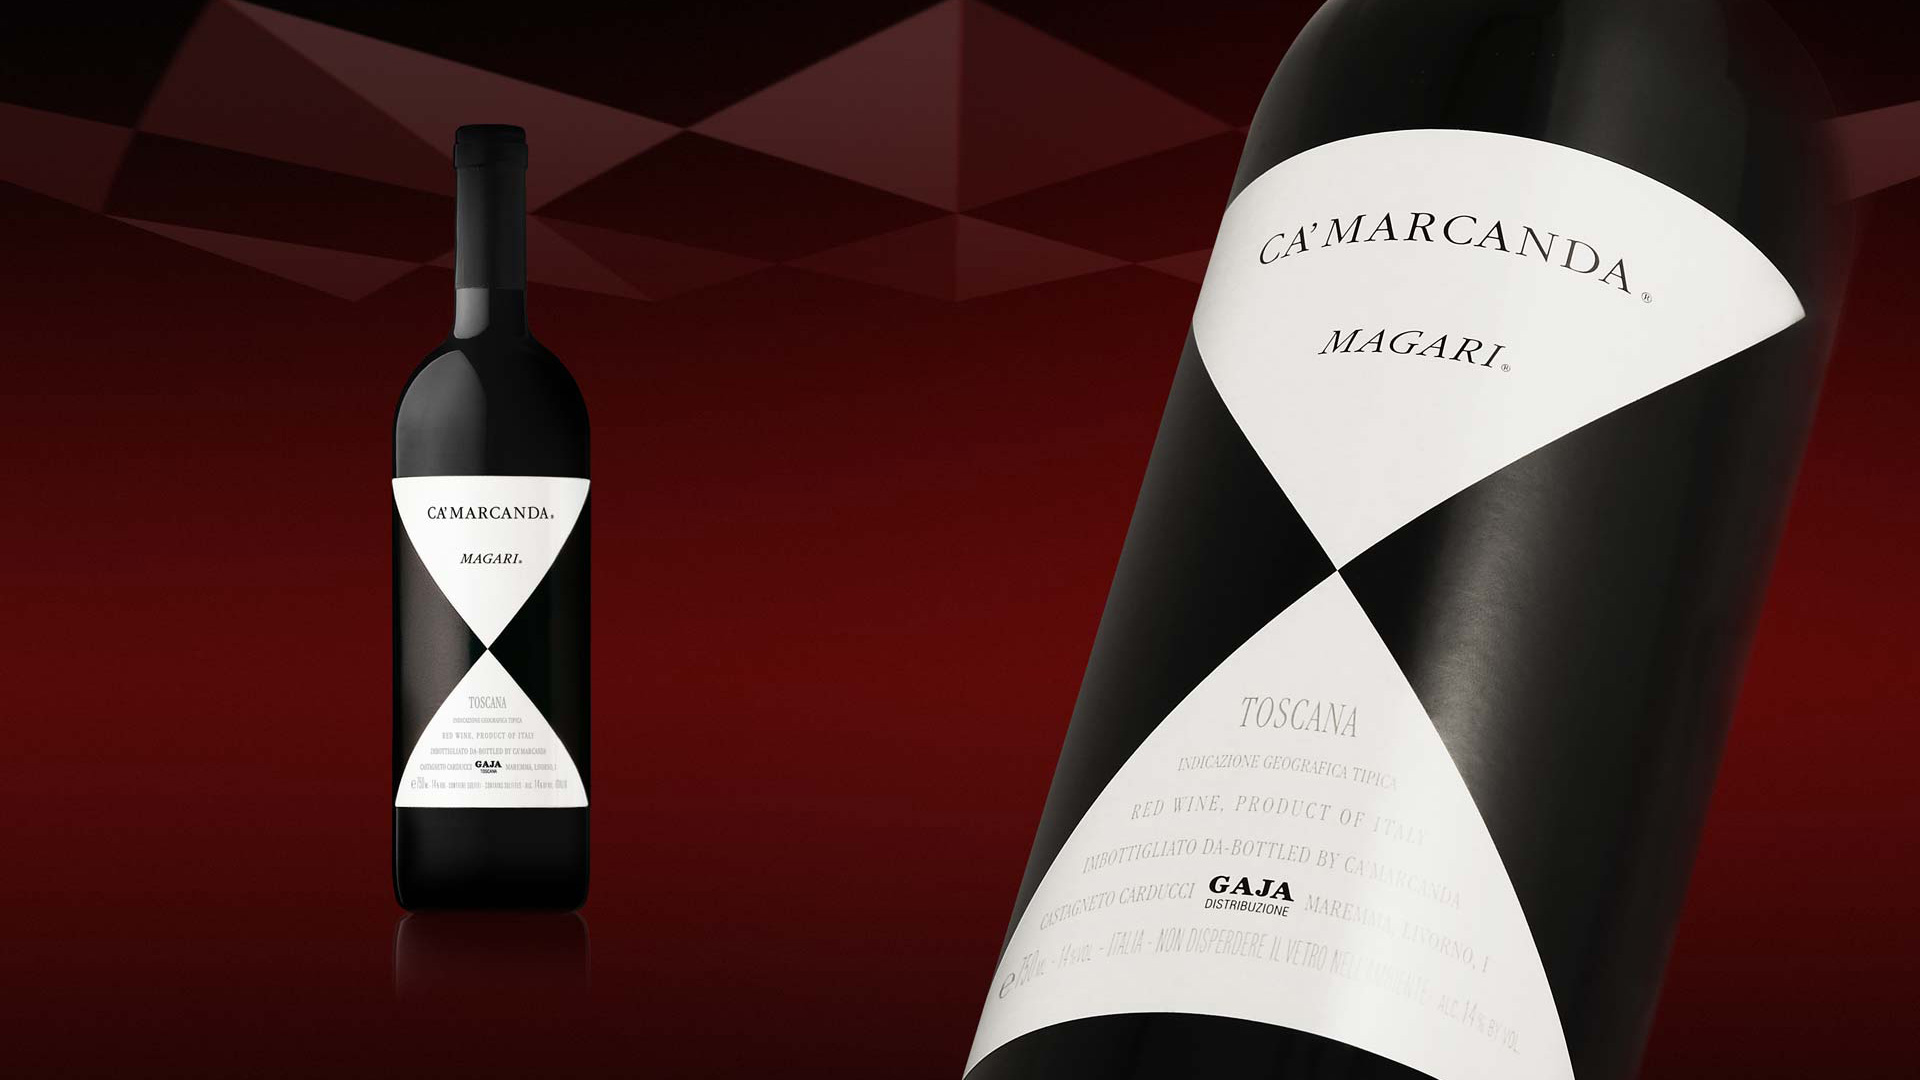 Gaja Ca Marcanda Packaging